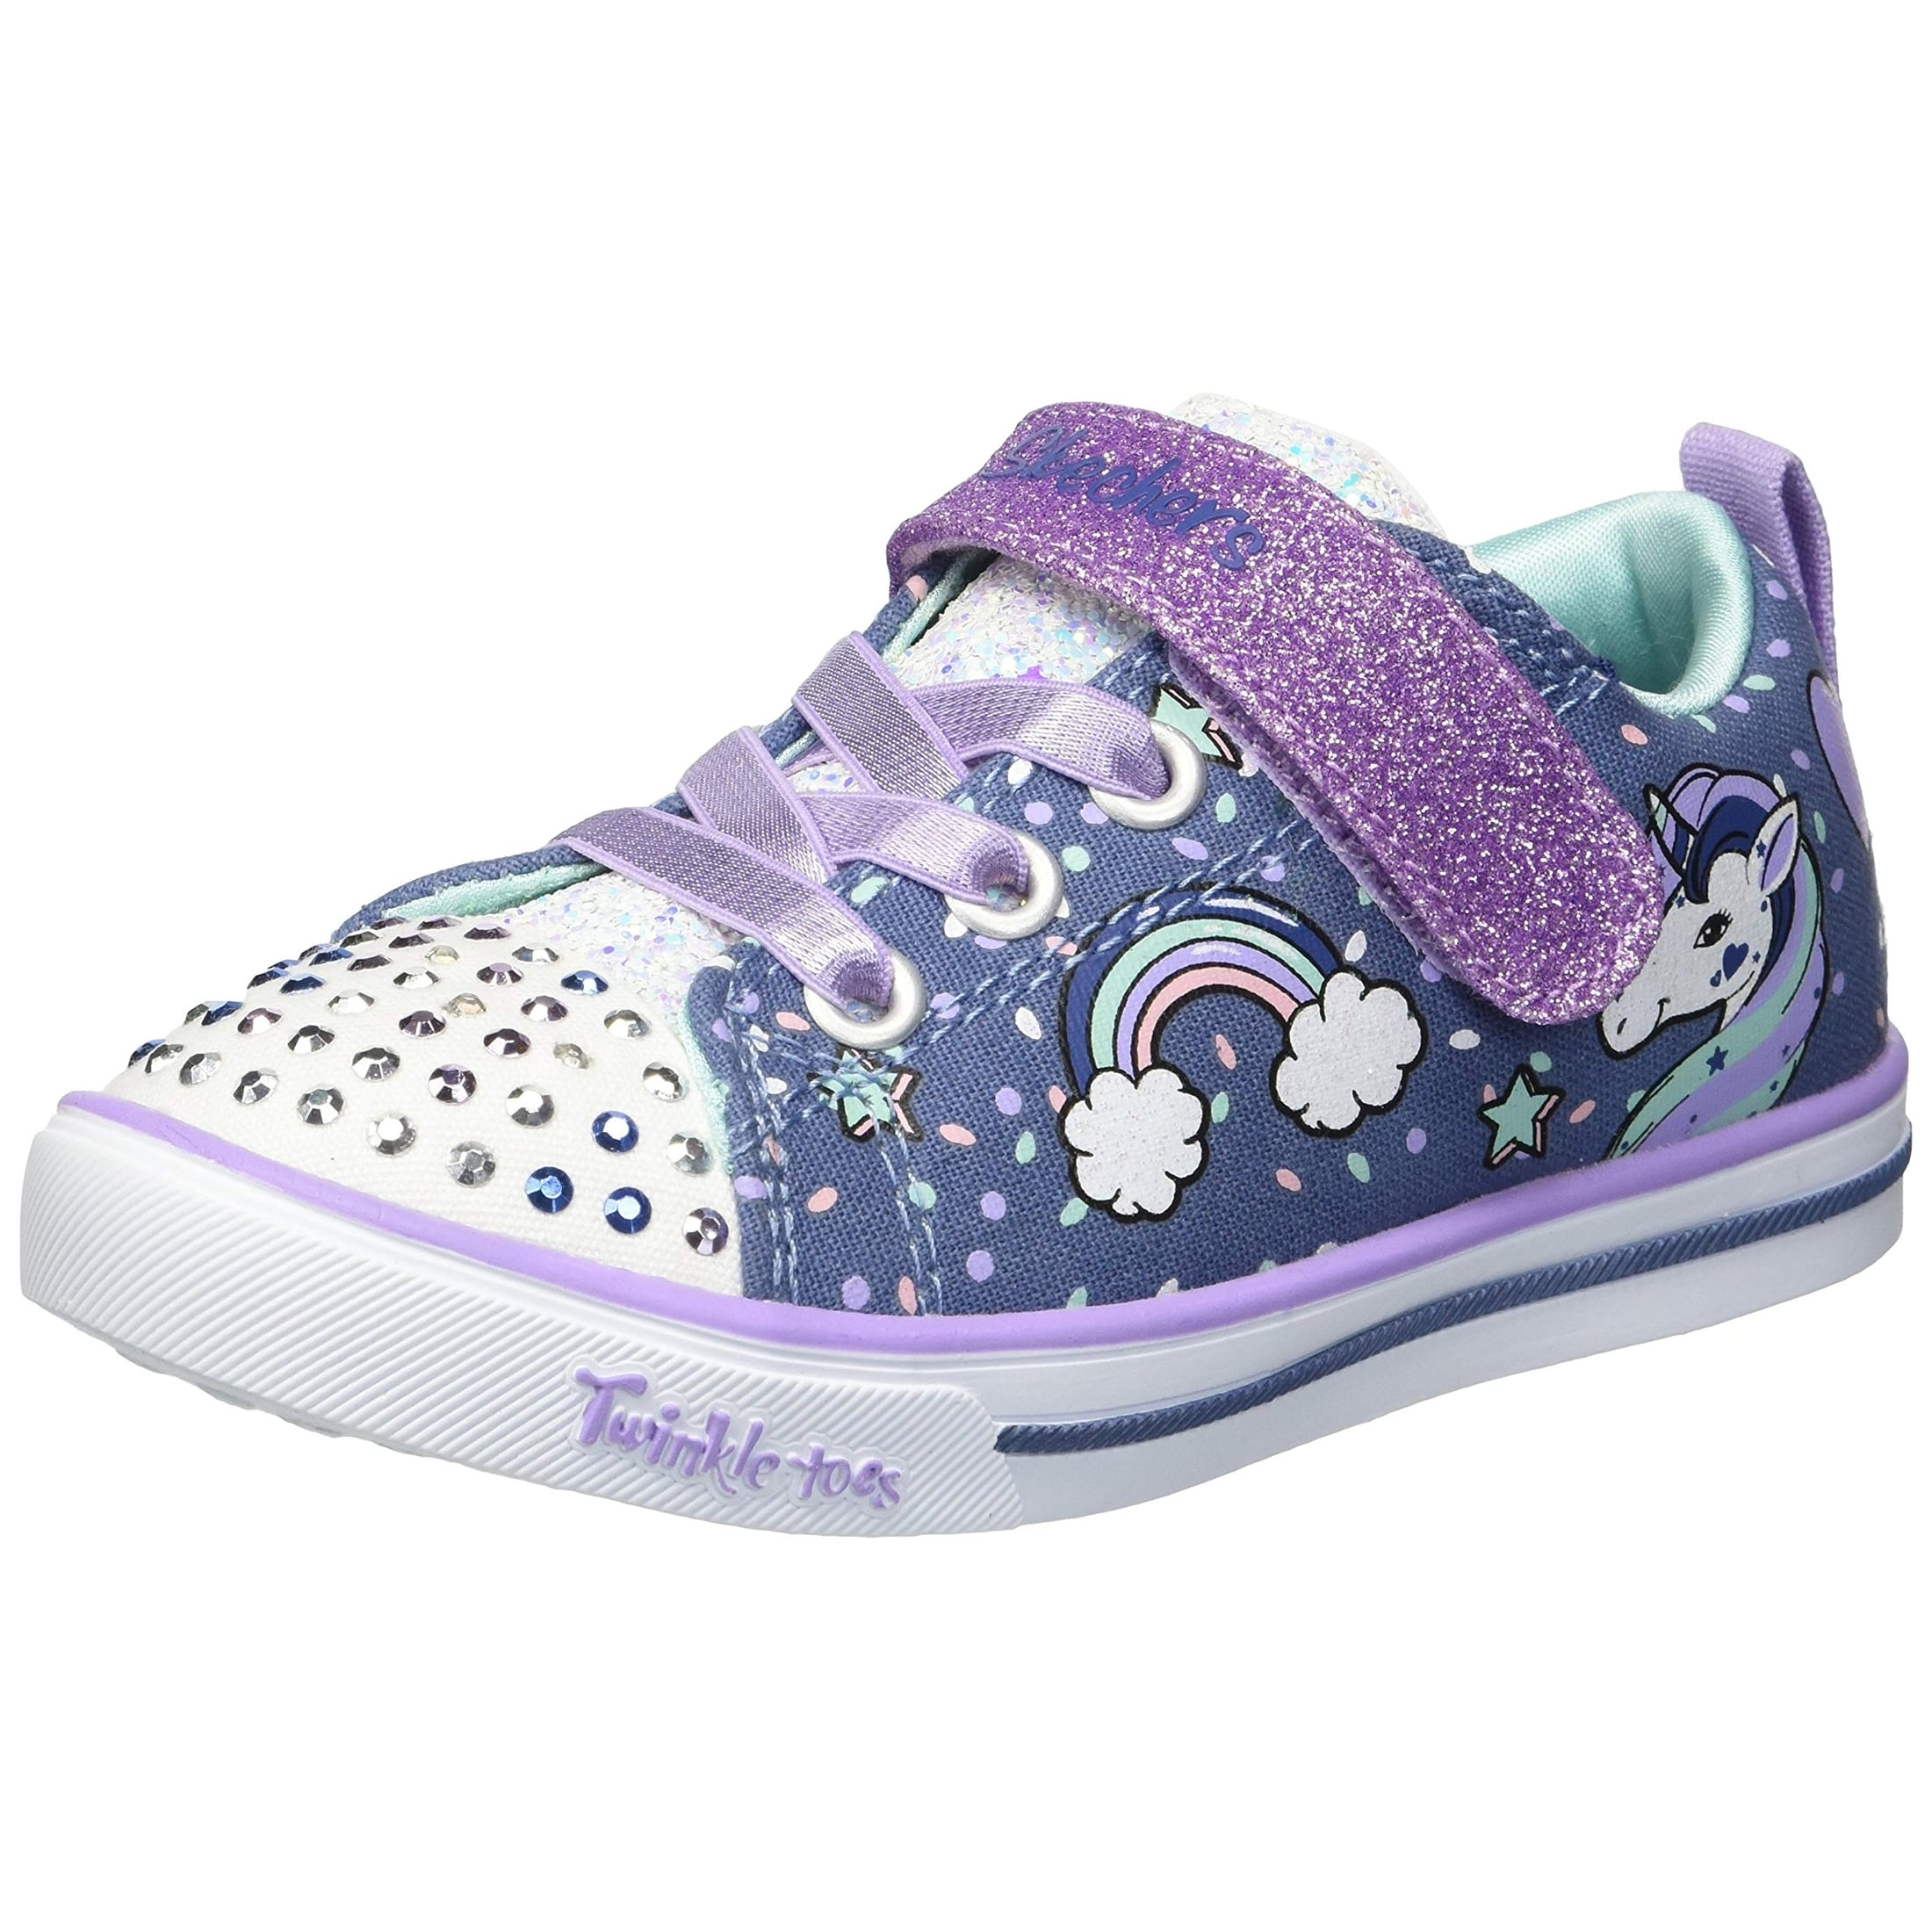 58ea5320e1f9 Skechers Girls  Shoes